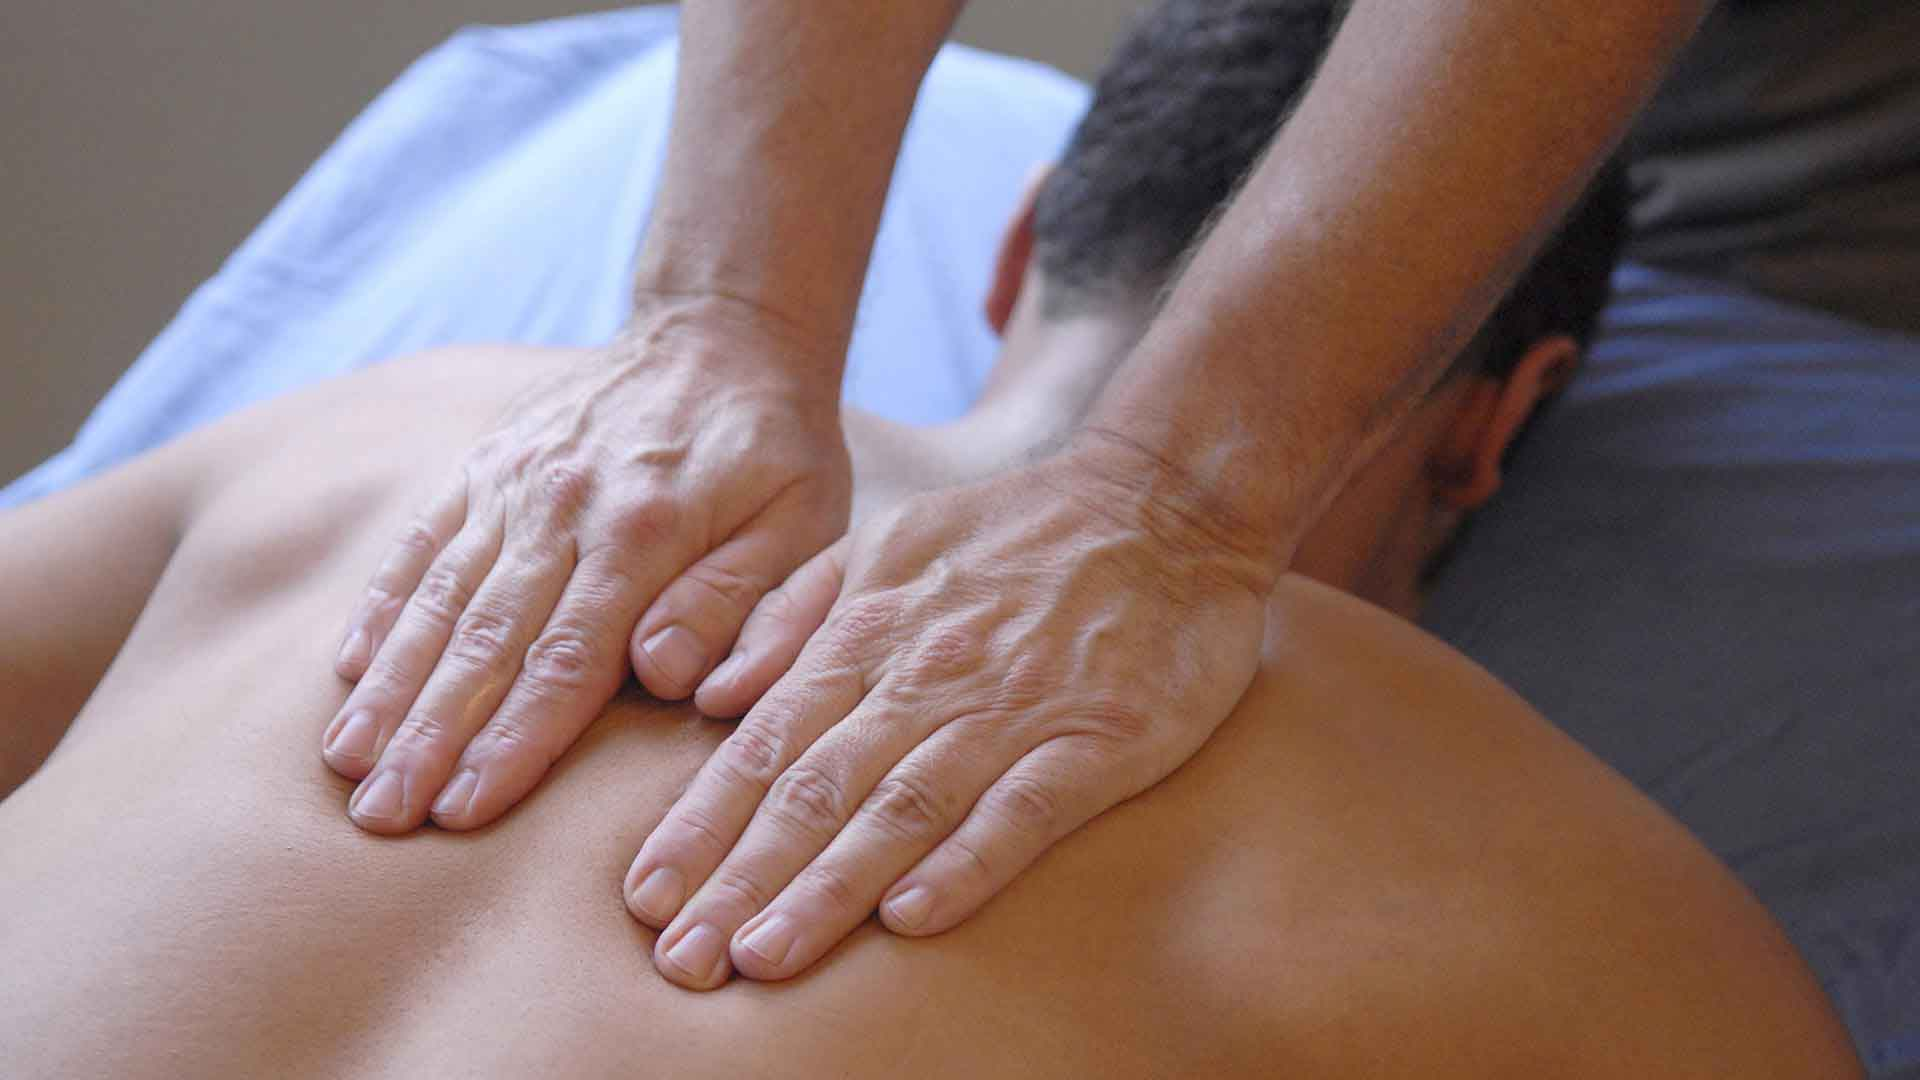 Massage-Therapy-for-Weight-Loss-Can-this-Work-1